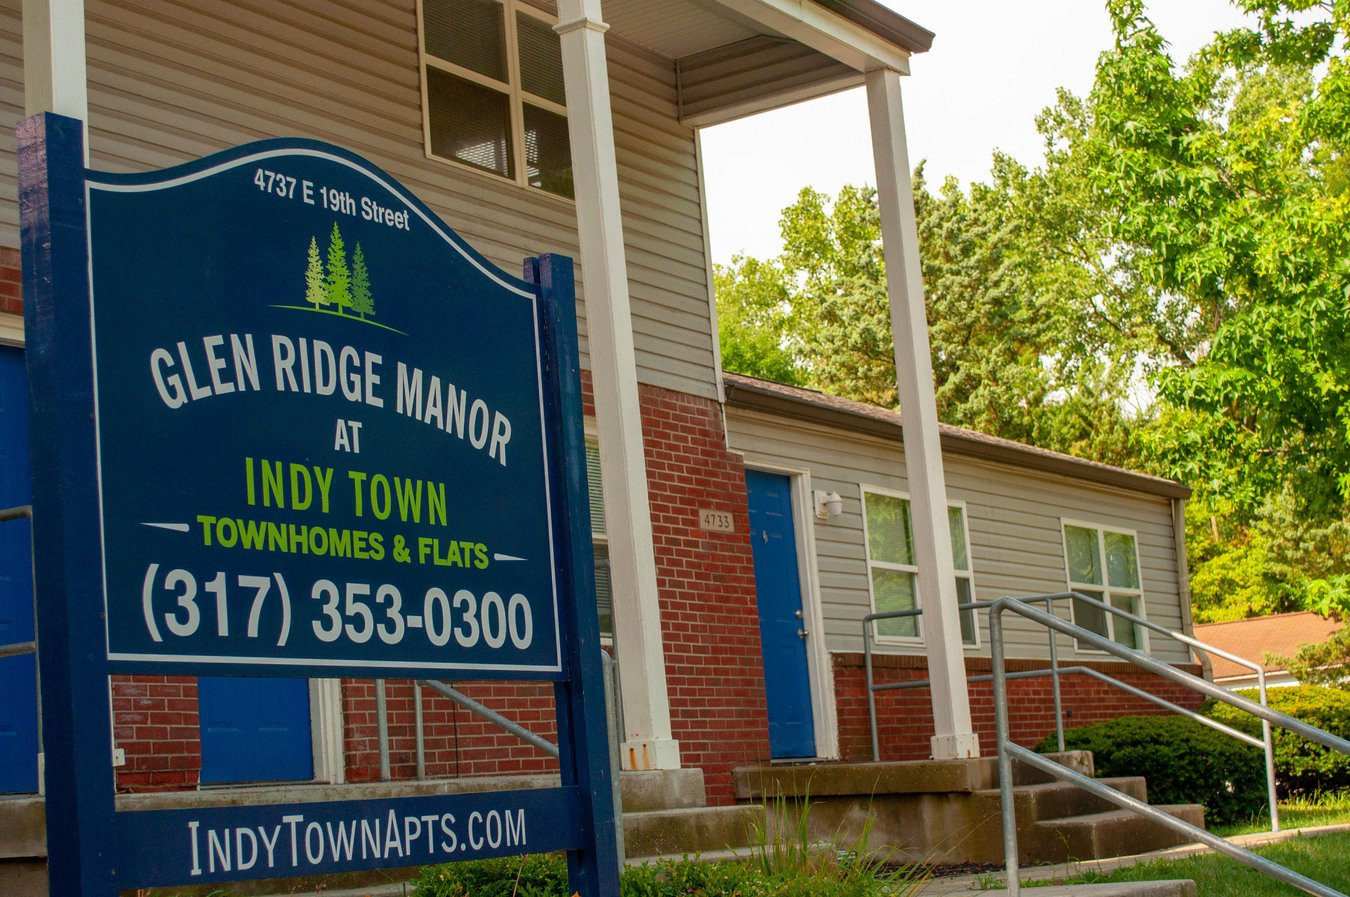 2 Bedrooms 1 Bathroom Apartment for rent at Glen Ridge Manor Townhomes And Flats (indy Town) in Indianapolis, IN